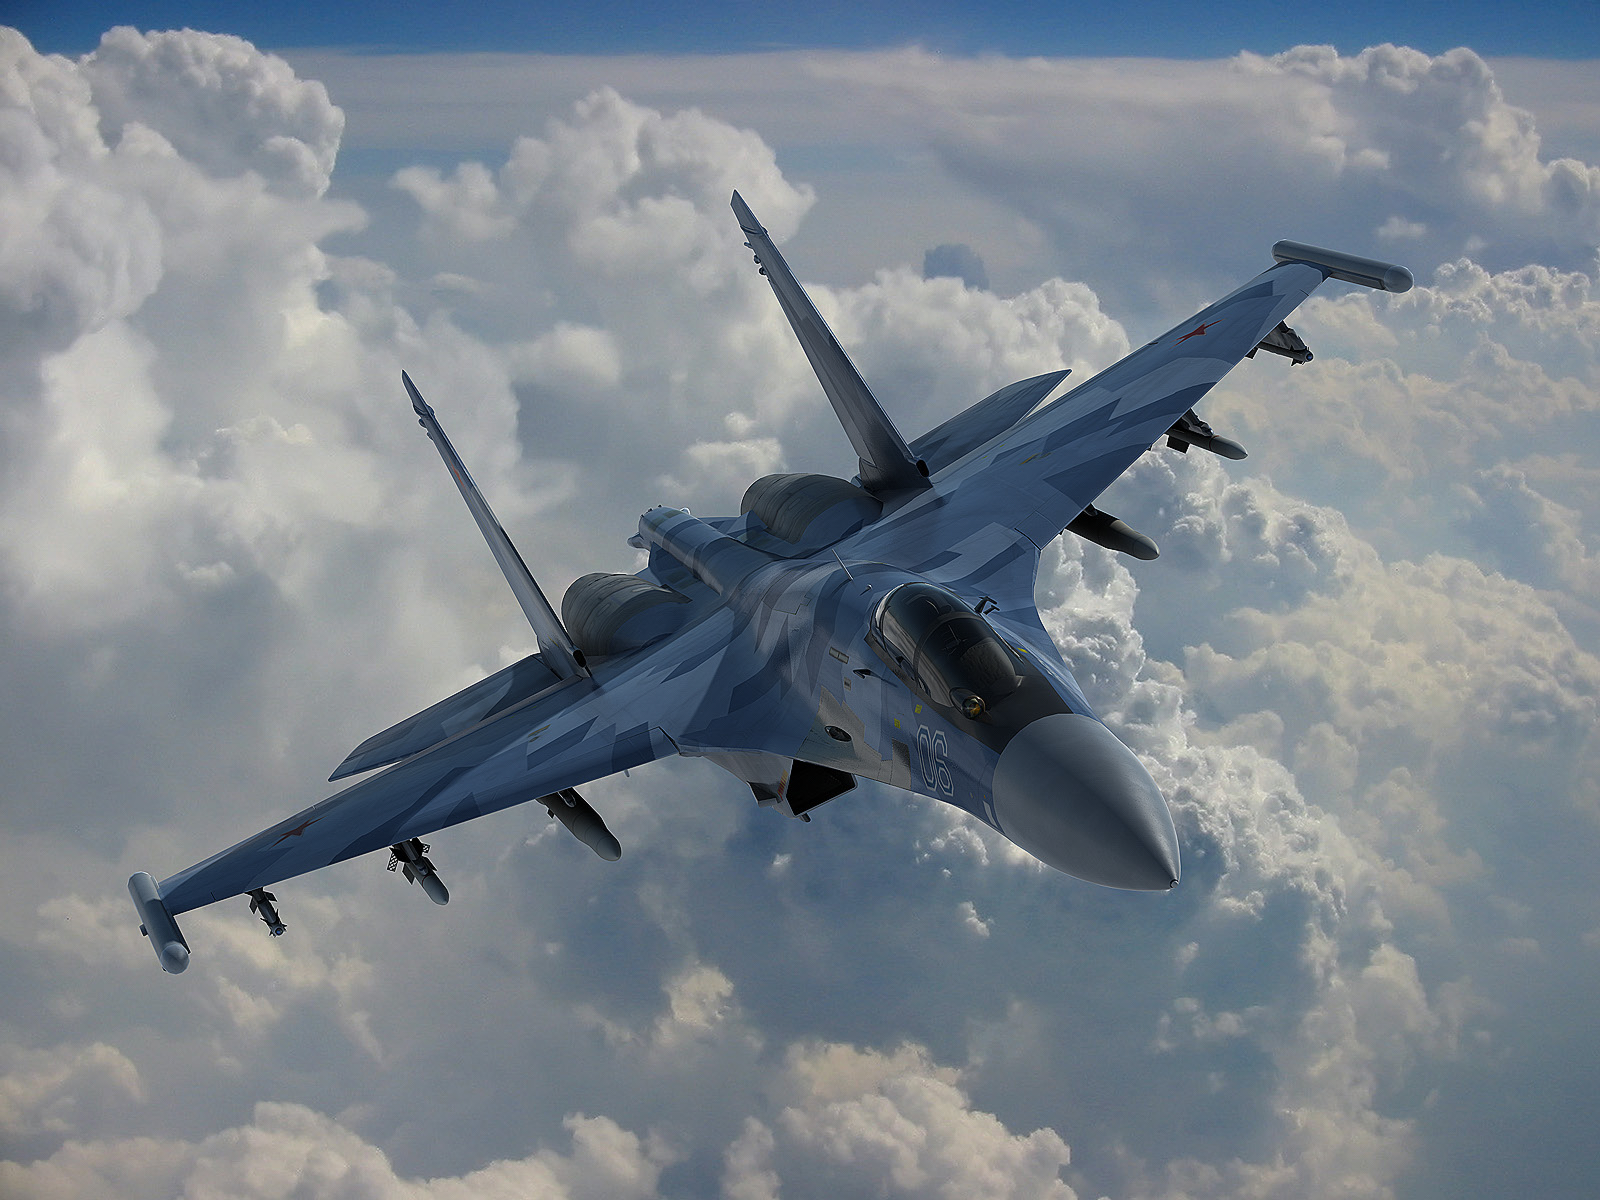 http://russia-insider.com/sites/insider/files/Su-35-Wallpapers8_0.jpg